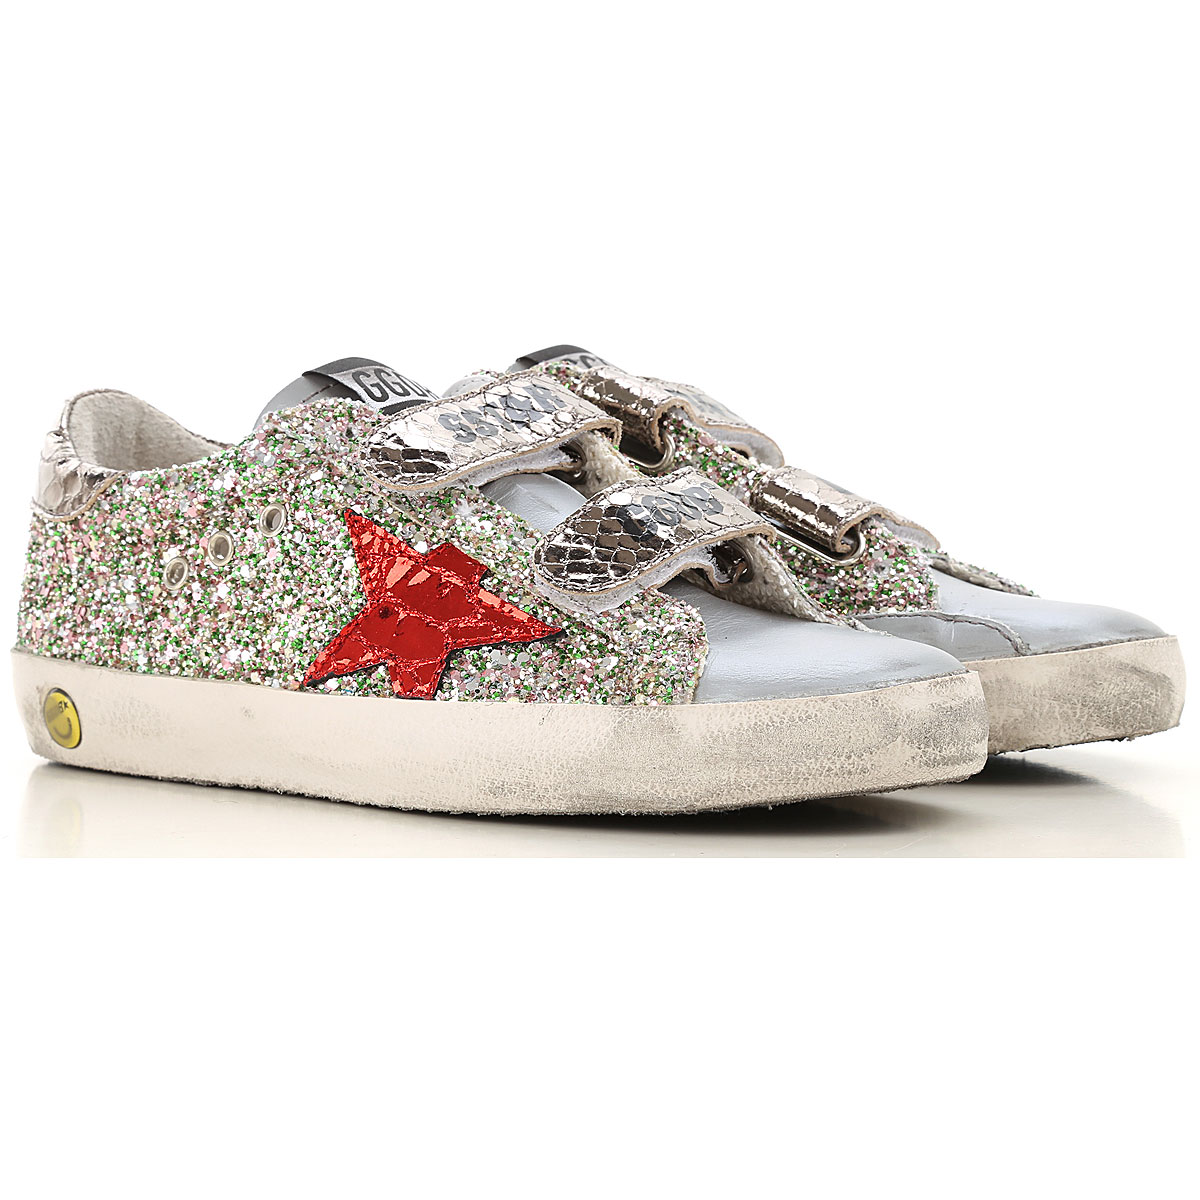 Golden Goose Kids Shoes for Girls On Sale, Silver, Leather, 2019, 24 25 26 27 29 30 31 32 33